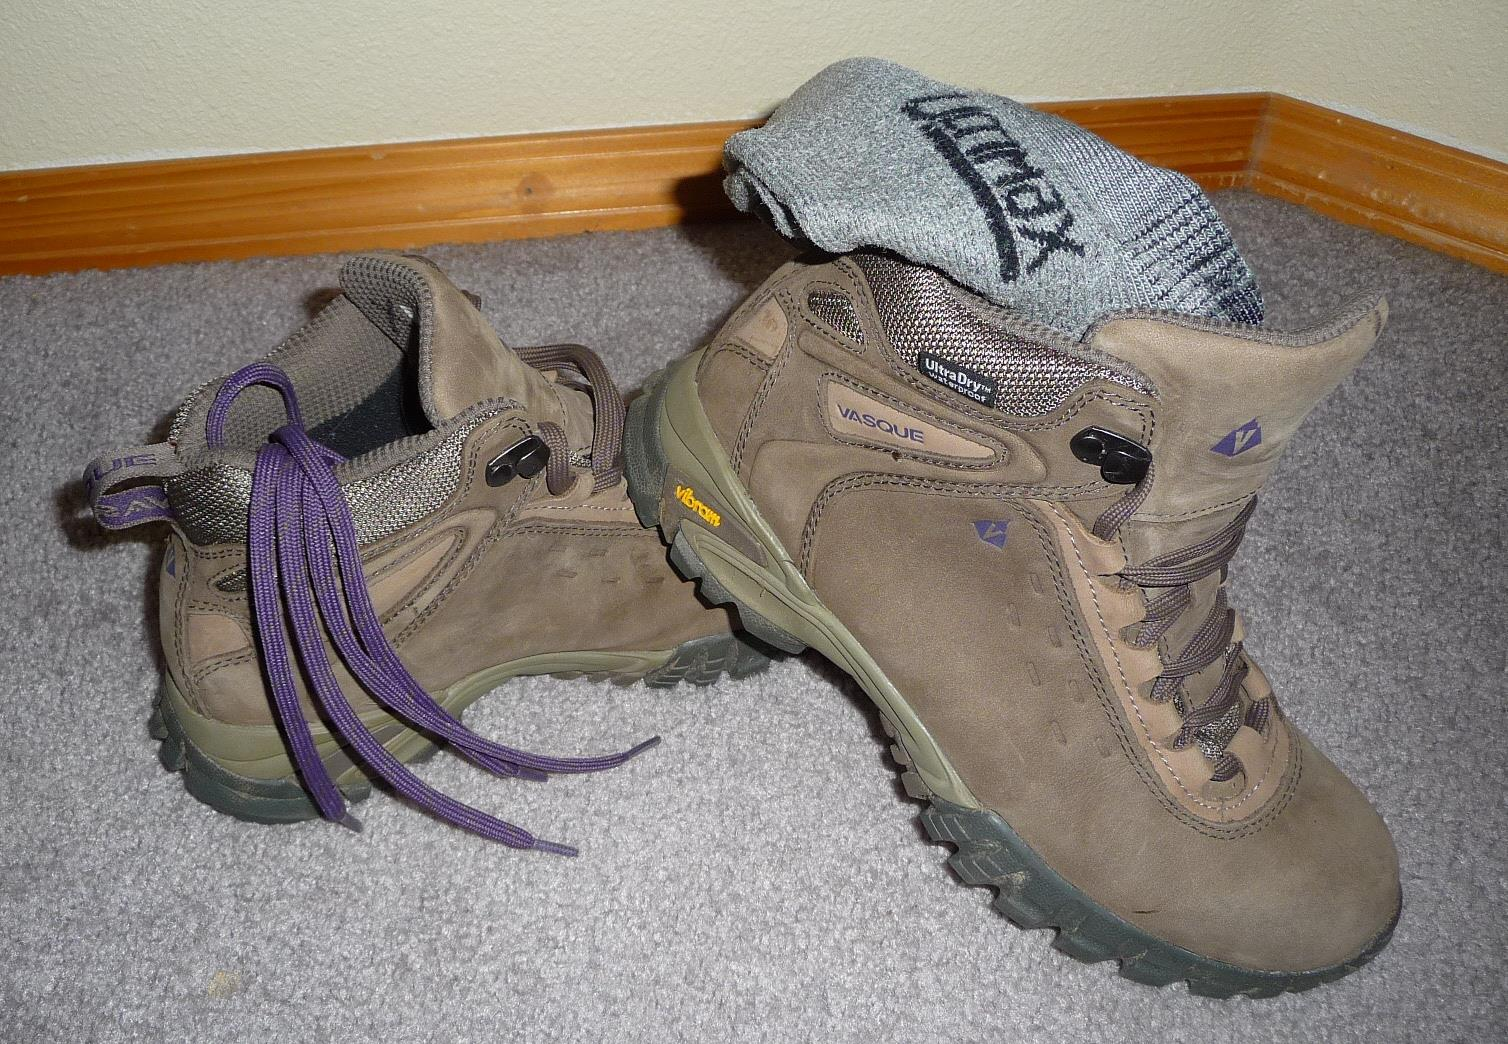 My-new-hiking-boots.jpg